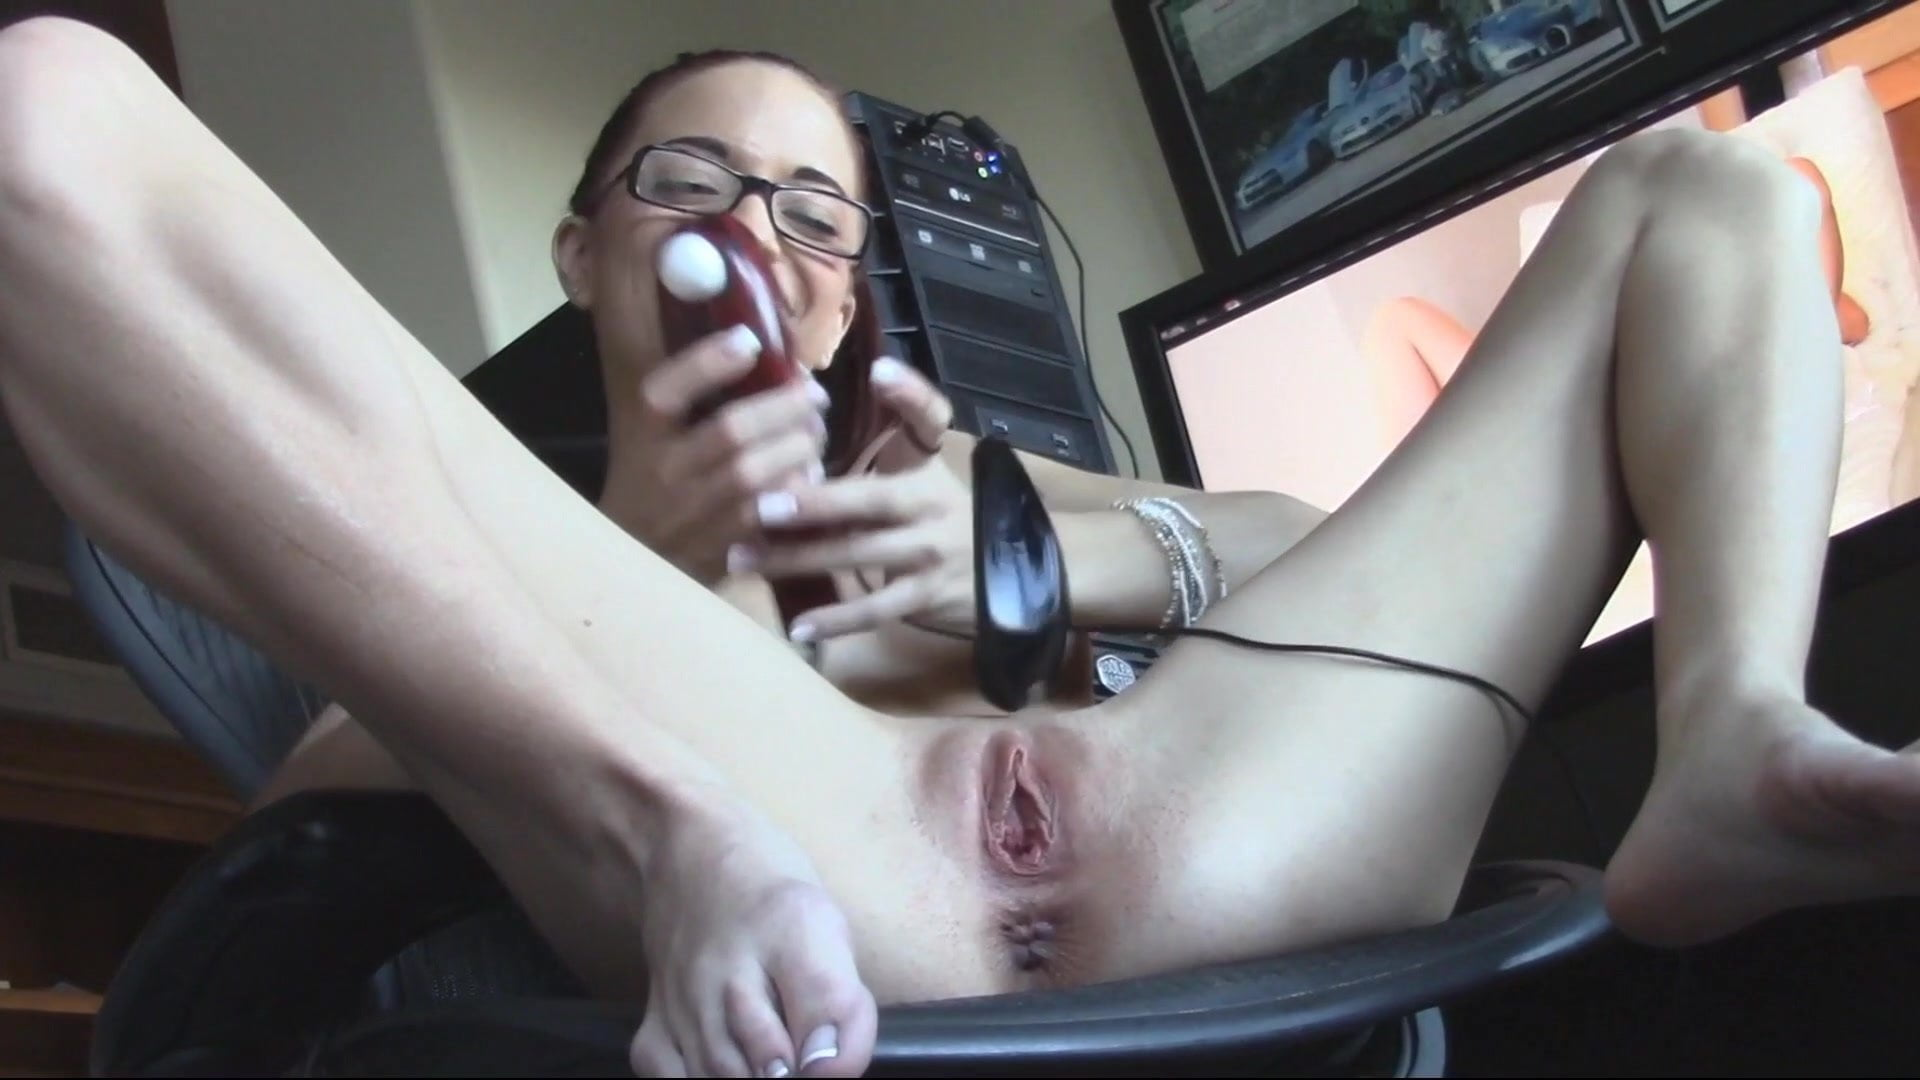 Mouse inserted in pussy — pic 6